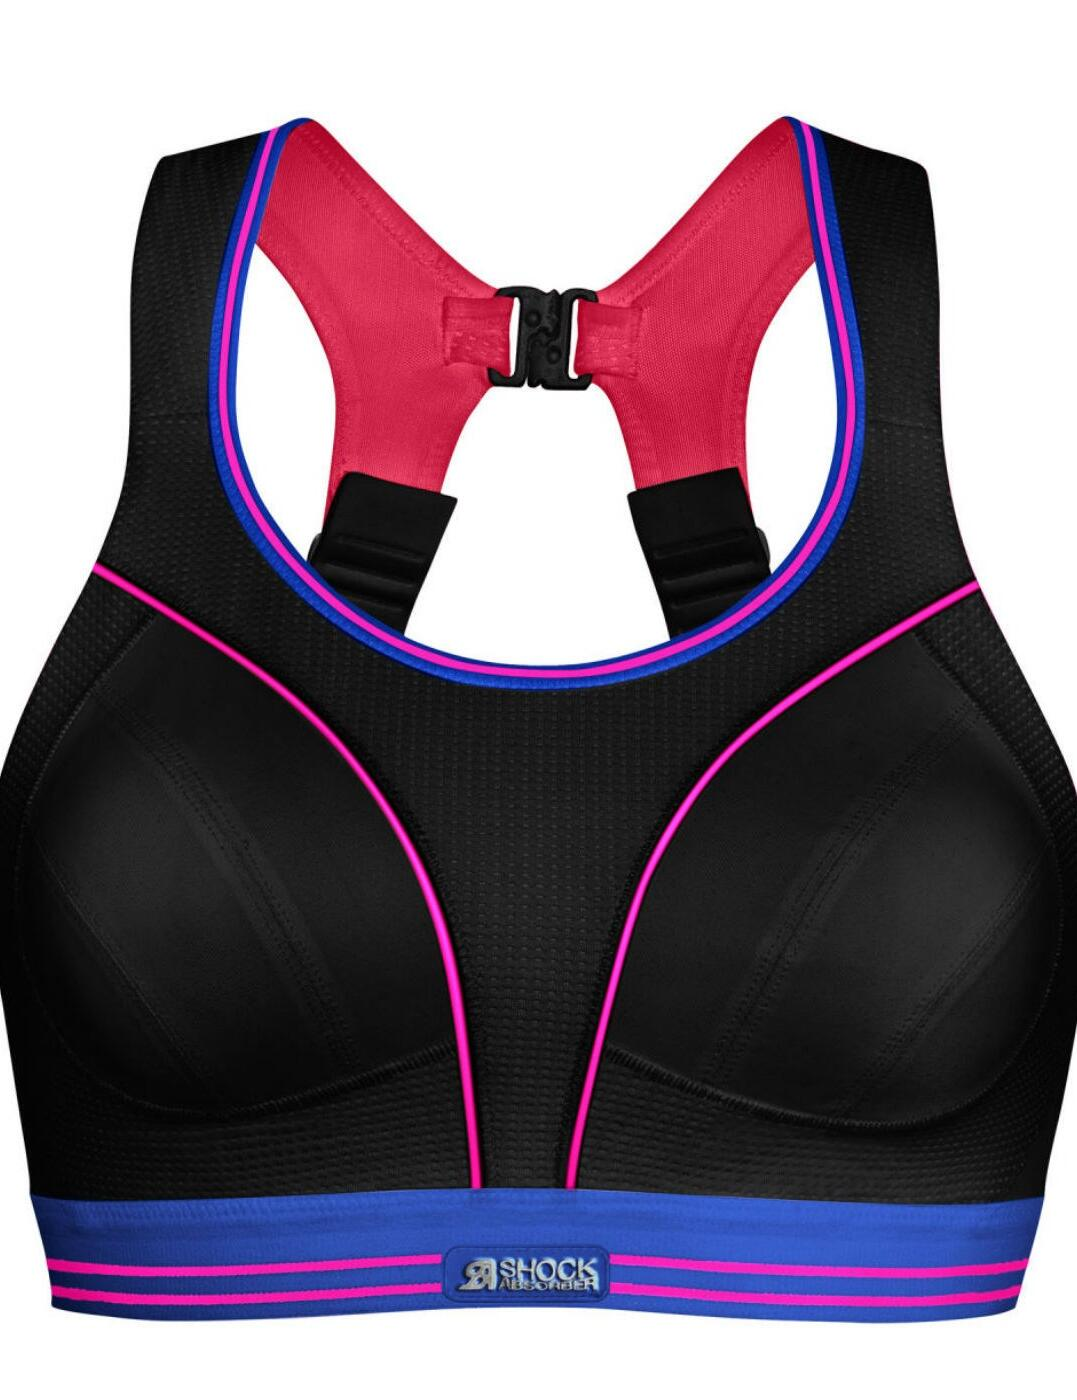 Shock-Absorber-Sports-Bra-S5044-Non-Wired-High-Impact-Run-Sports-Bra thumbnail 13